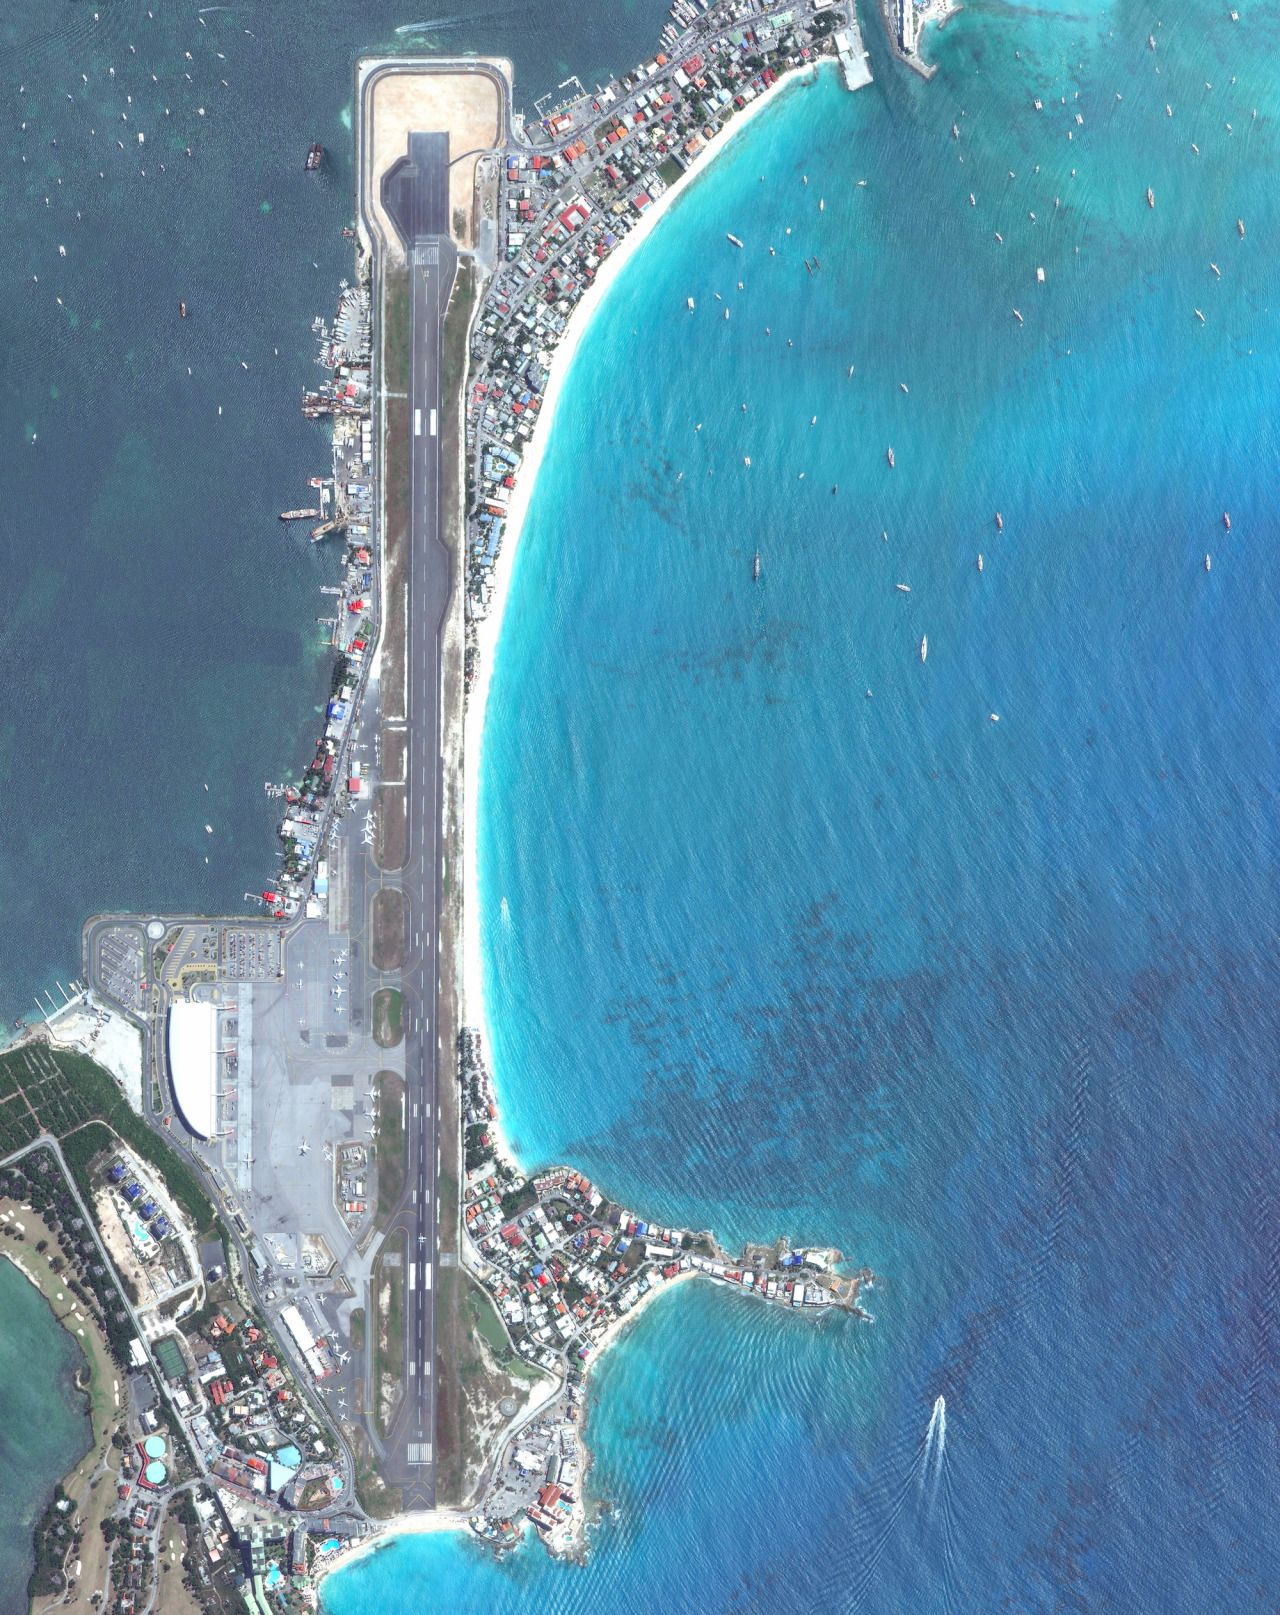 Princess Juliana International Airport is the main airport on the Caribbean island of Saint Martin. The airport is well-known for the approach to Runway 10, seen at the bottom of this Overview. Here arriving aircraft must have a 3° glide slope, flying at a shockingly low altitude over people relaxing on Maho Beach, to land safely.